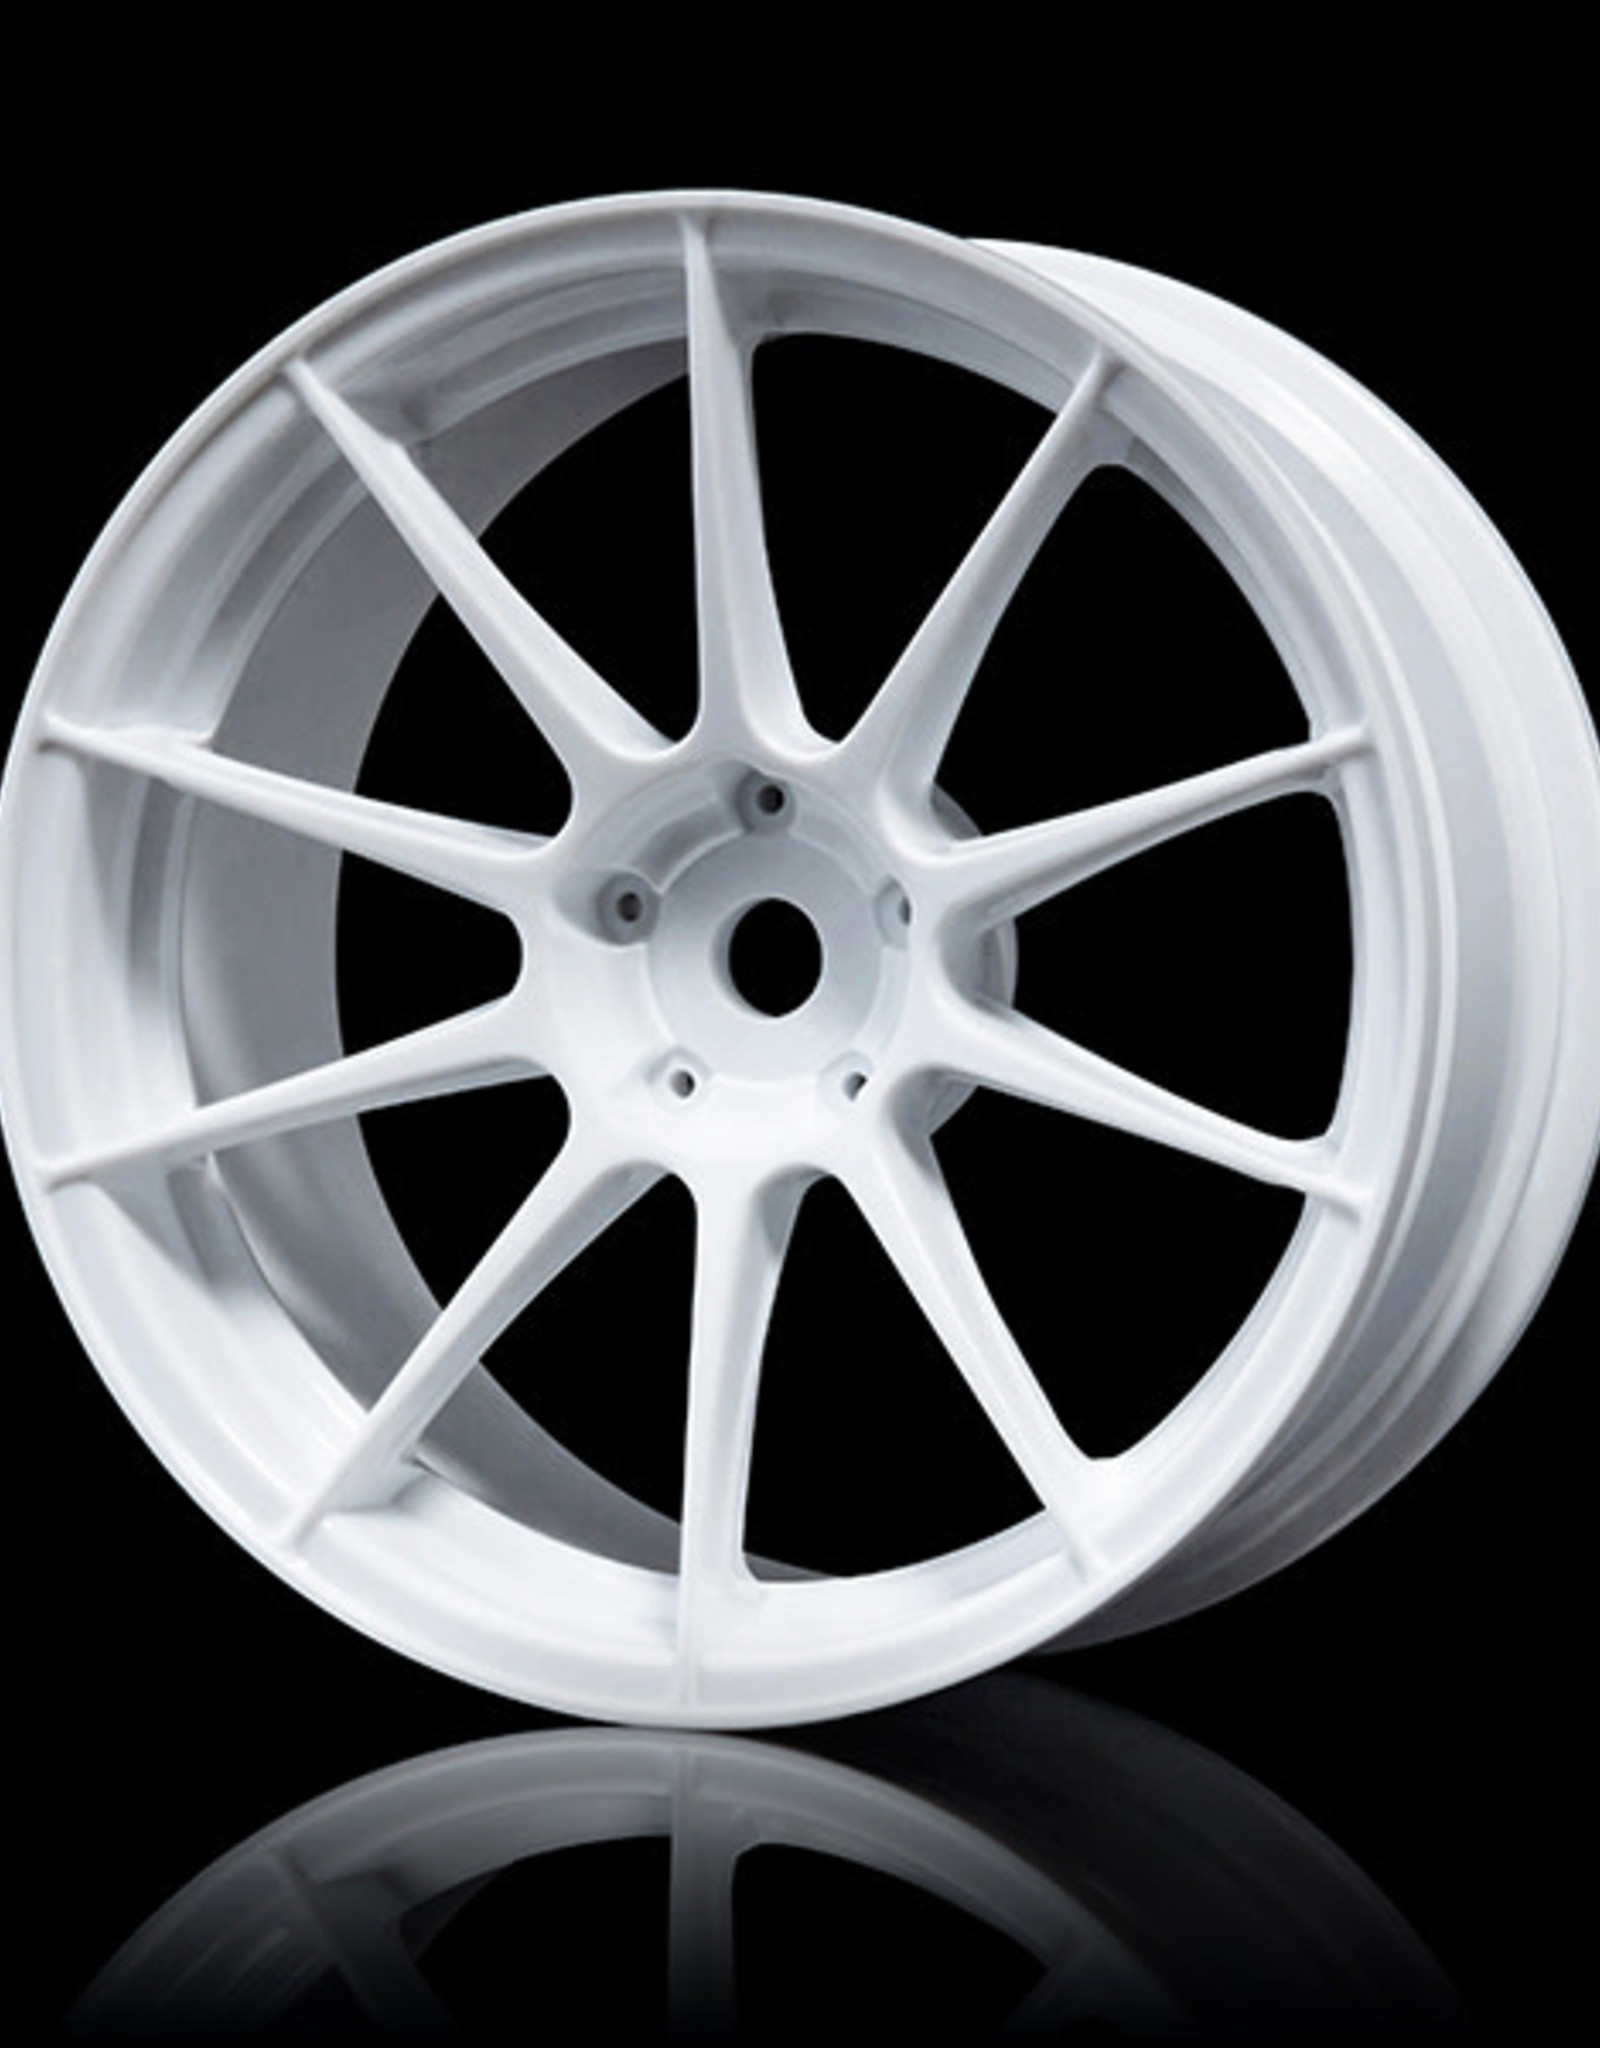 MST 5H Drift Wheel (4pcs) - MST White 3mm